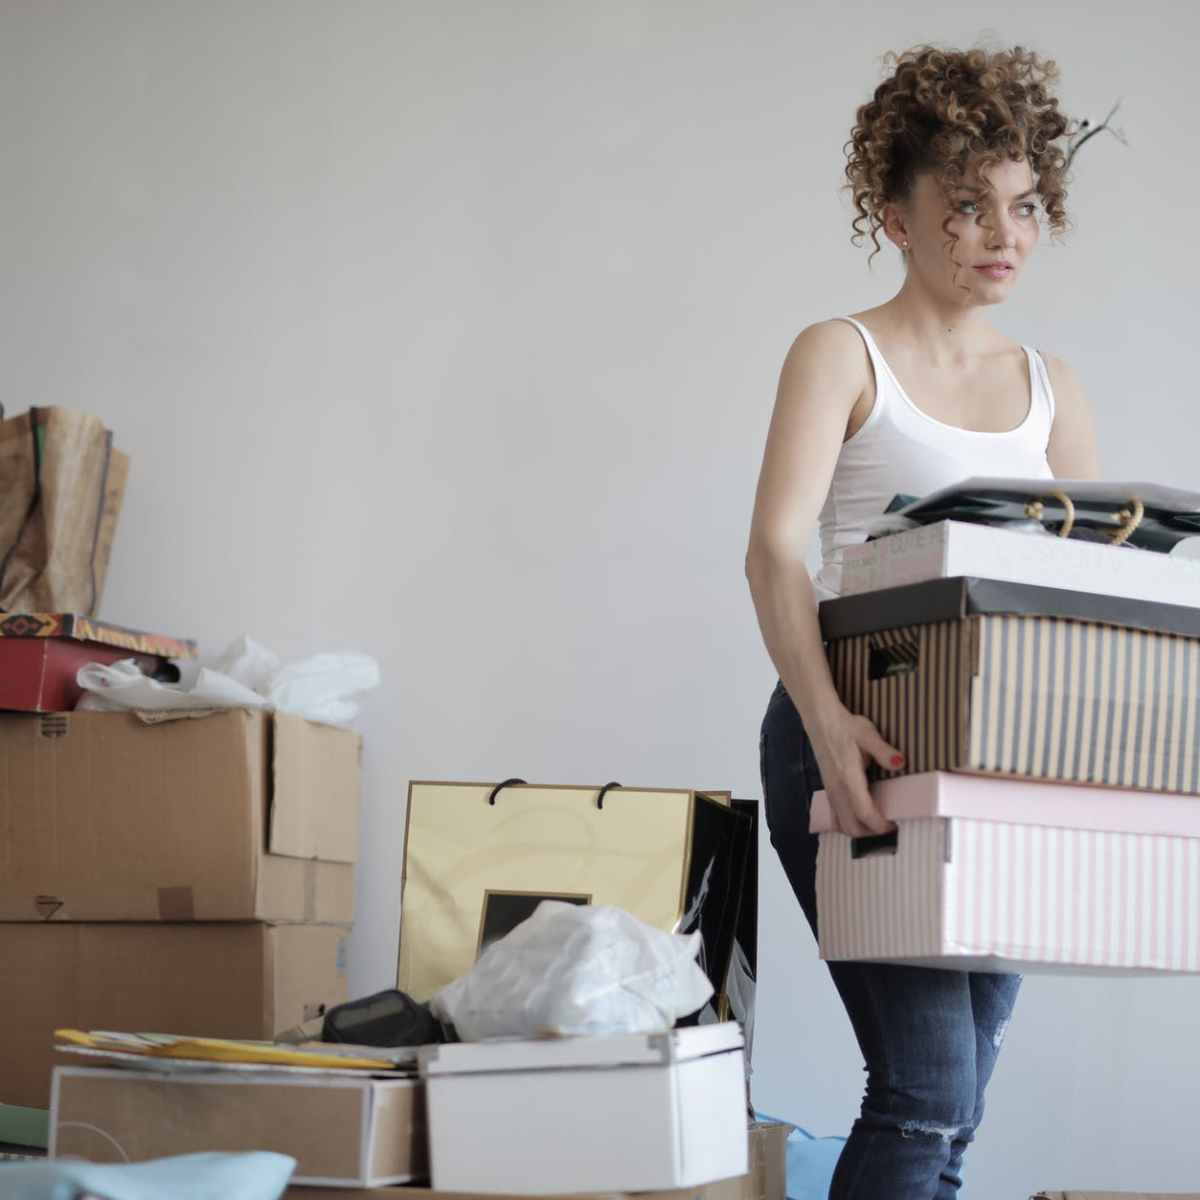 concentrated woman carrying stack of cardboard boxes for relocation